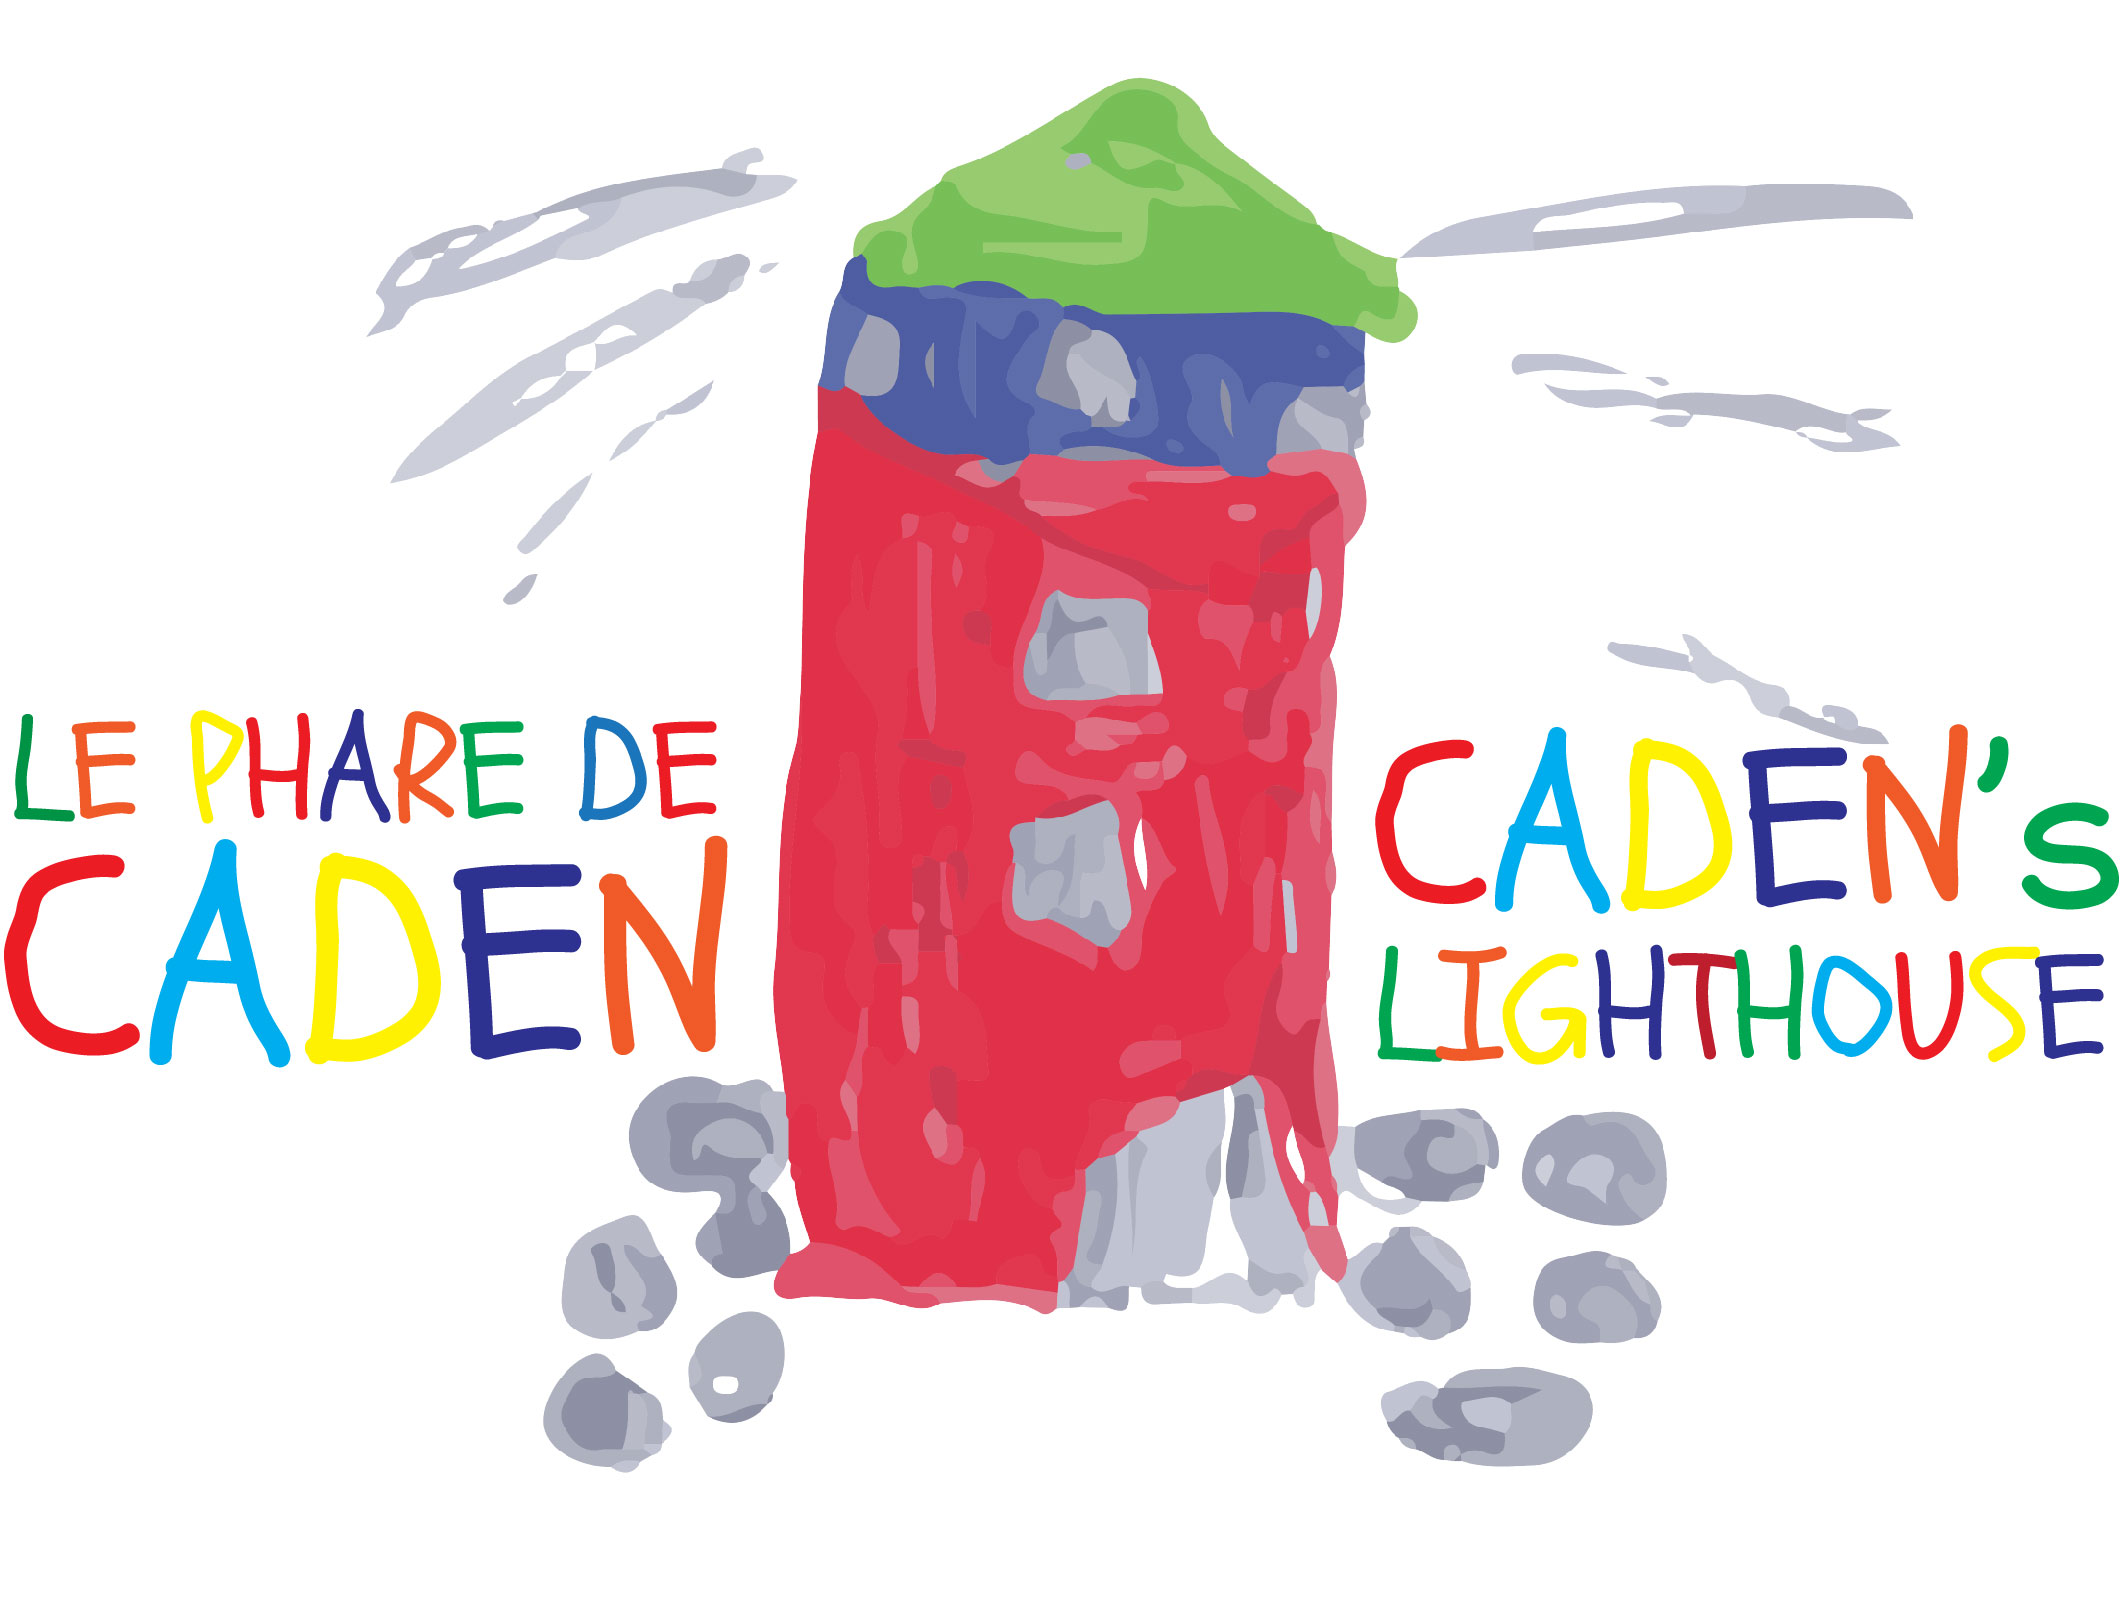 Caden's Lighthouse